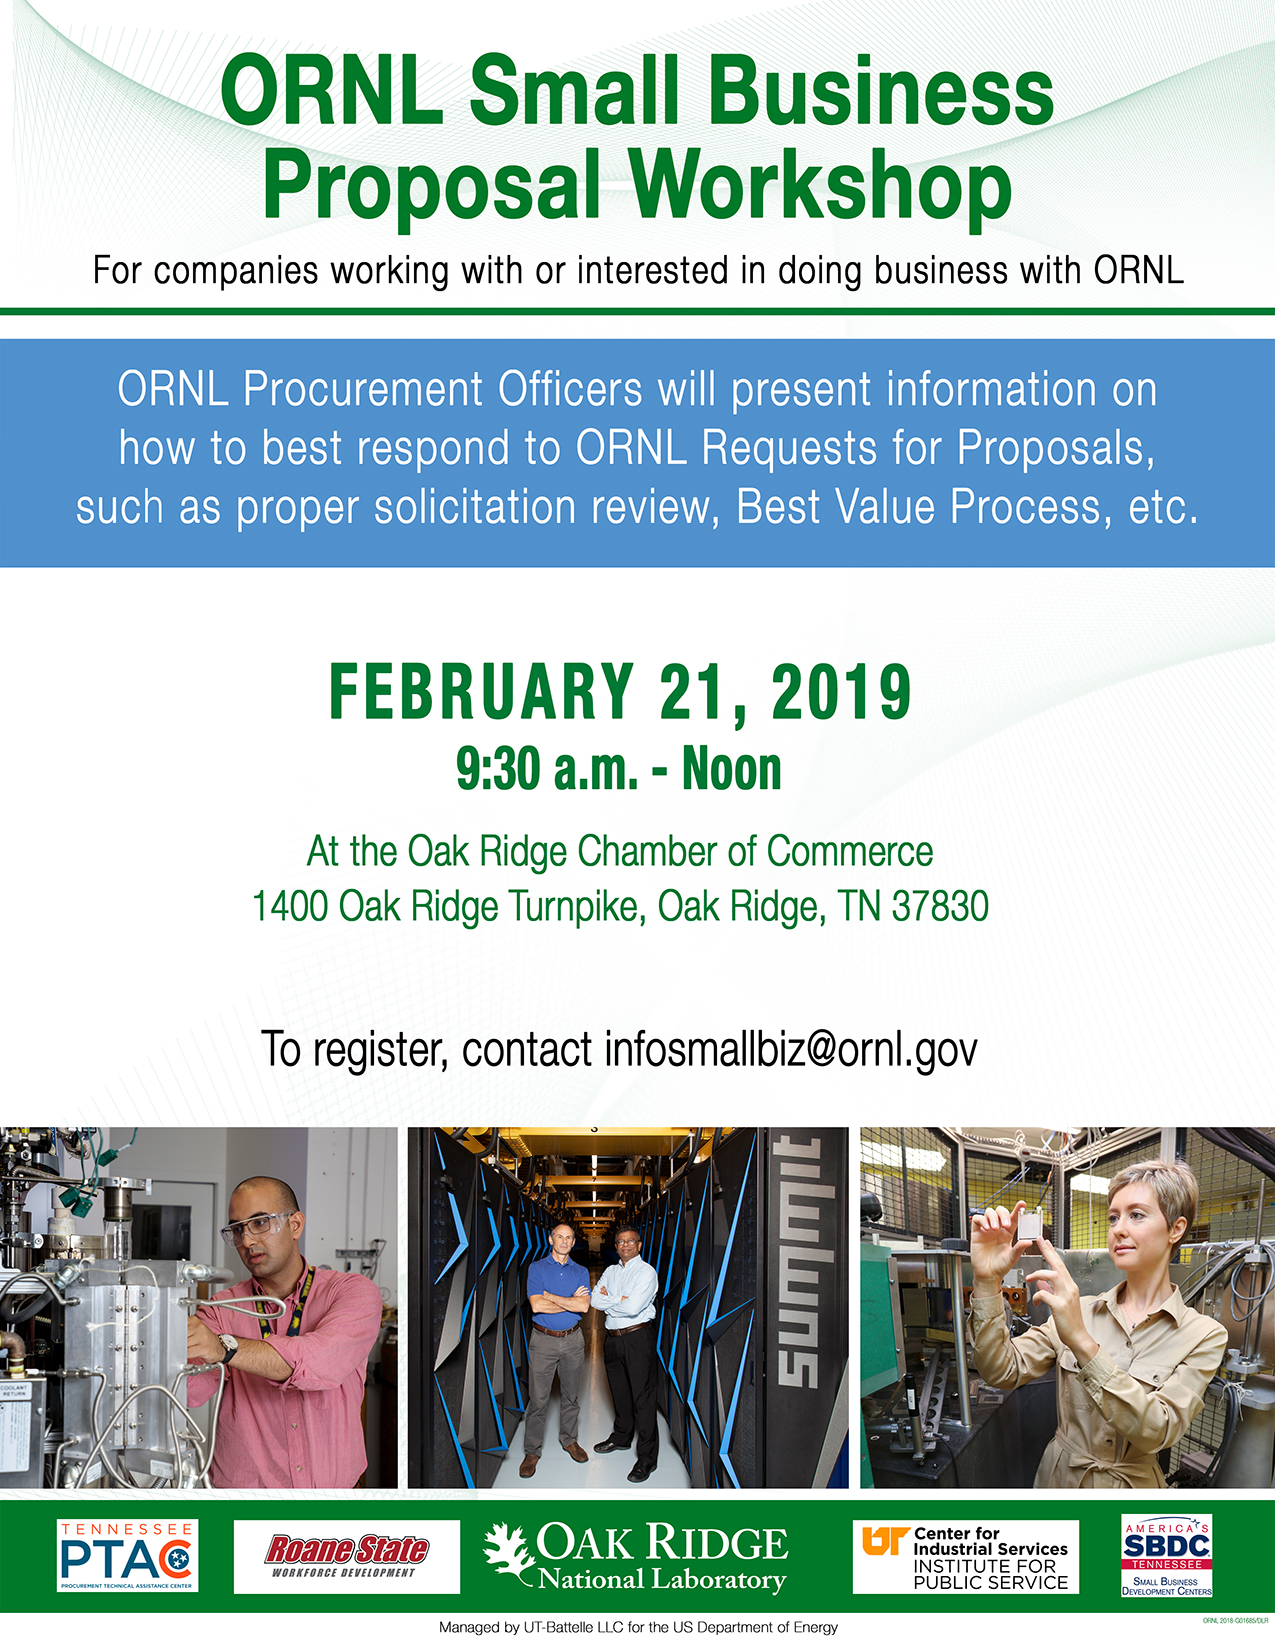 ORNL Small Business Proposal Workshop, 2.21.19